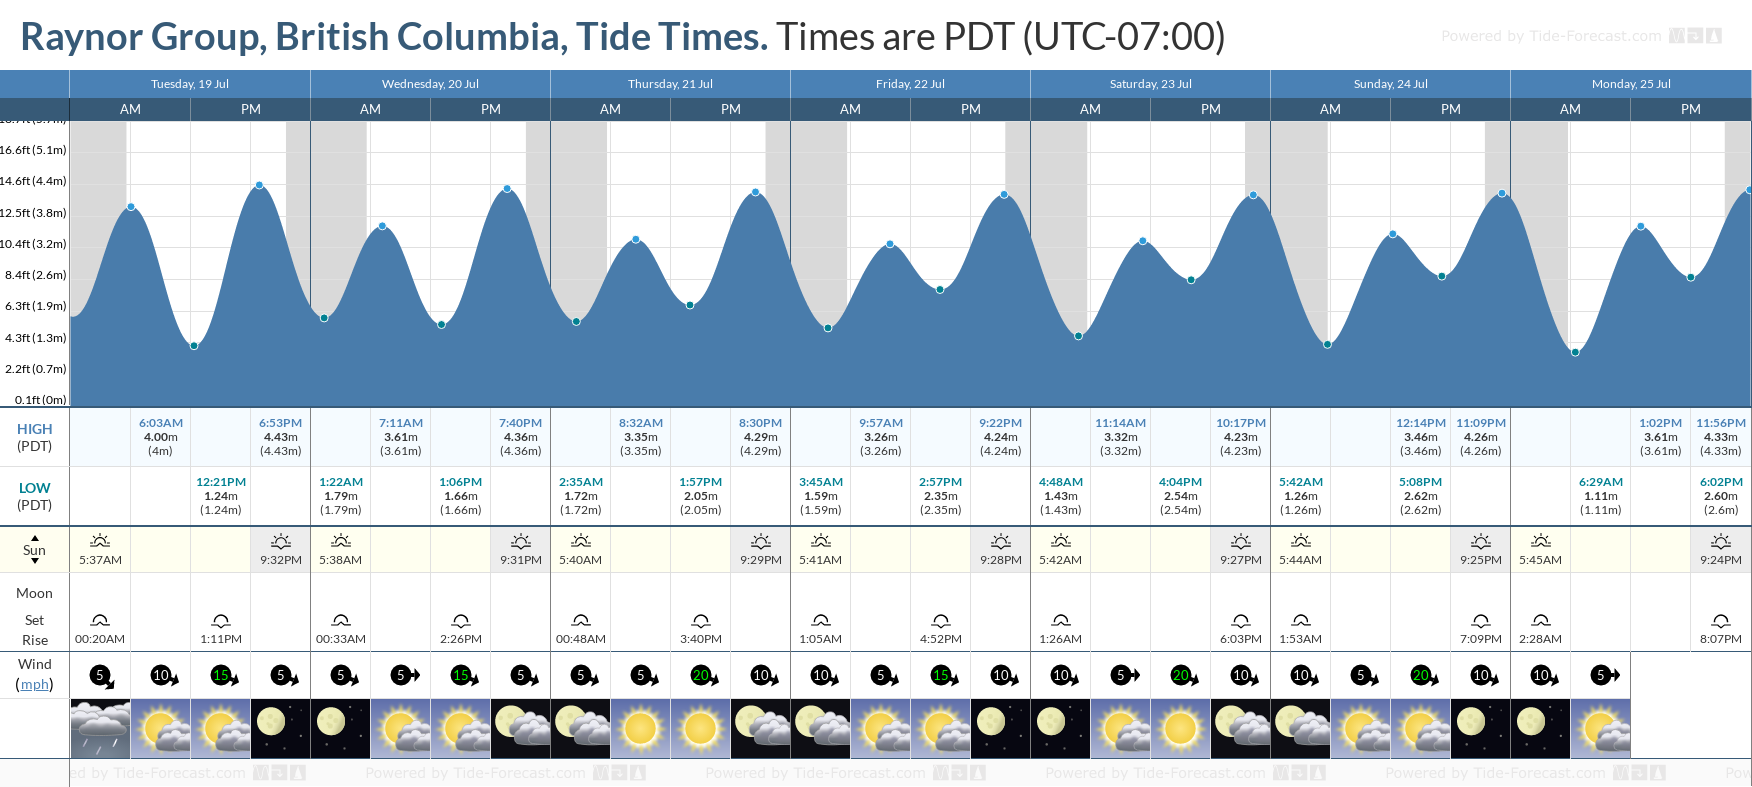 Raynor Group, British Columbia Tide Chart including high and low tide tide times for the next 7 days